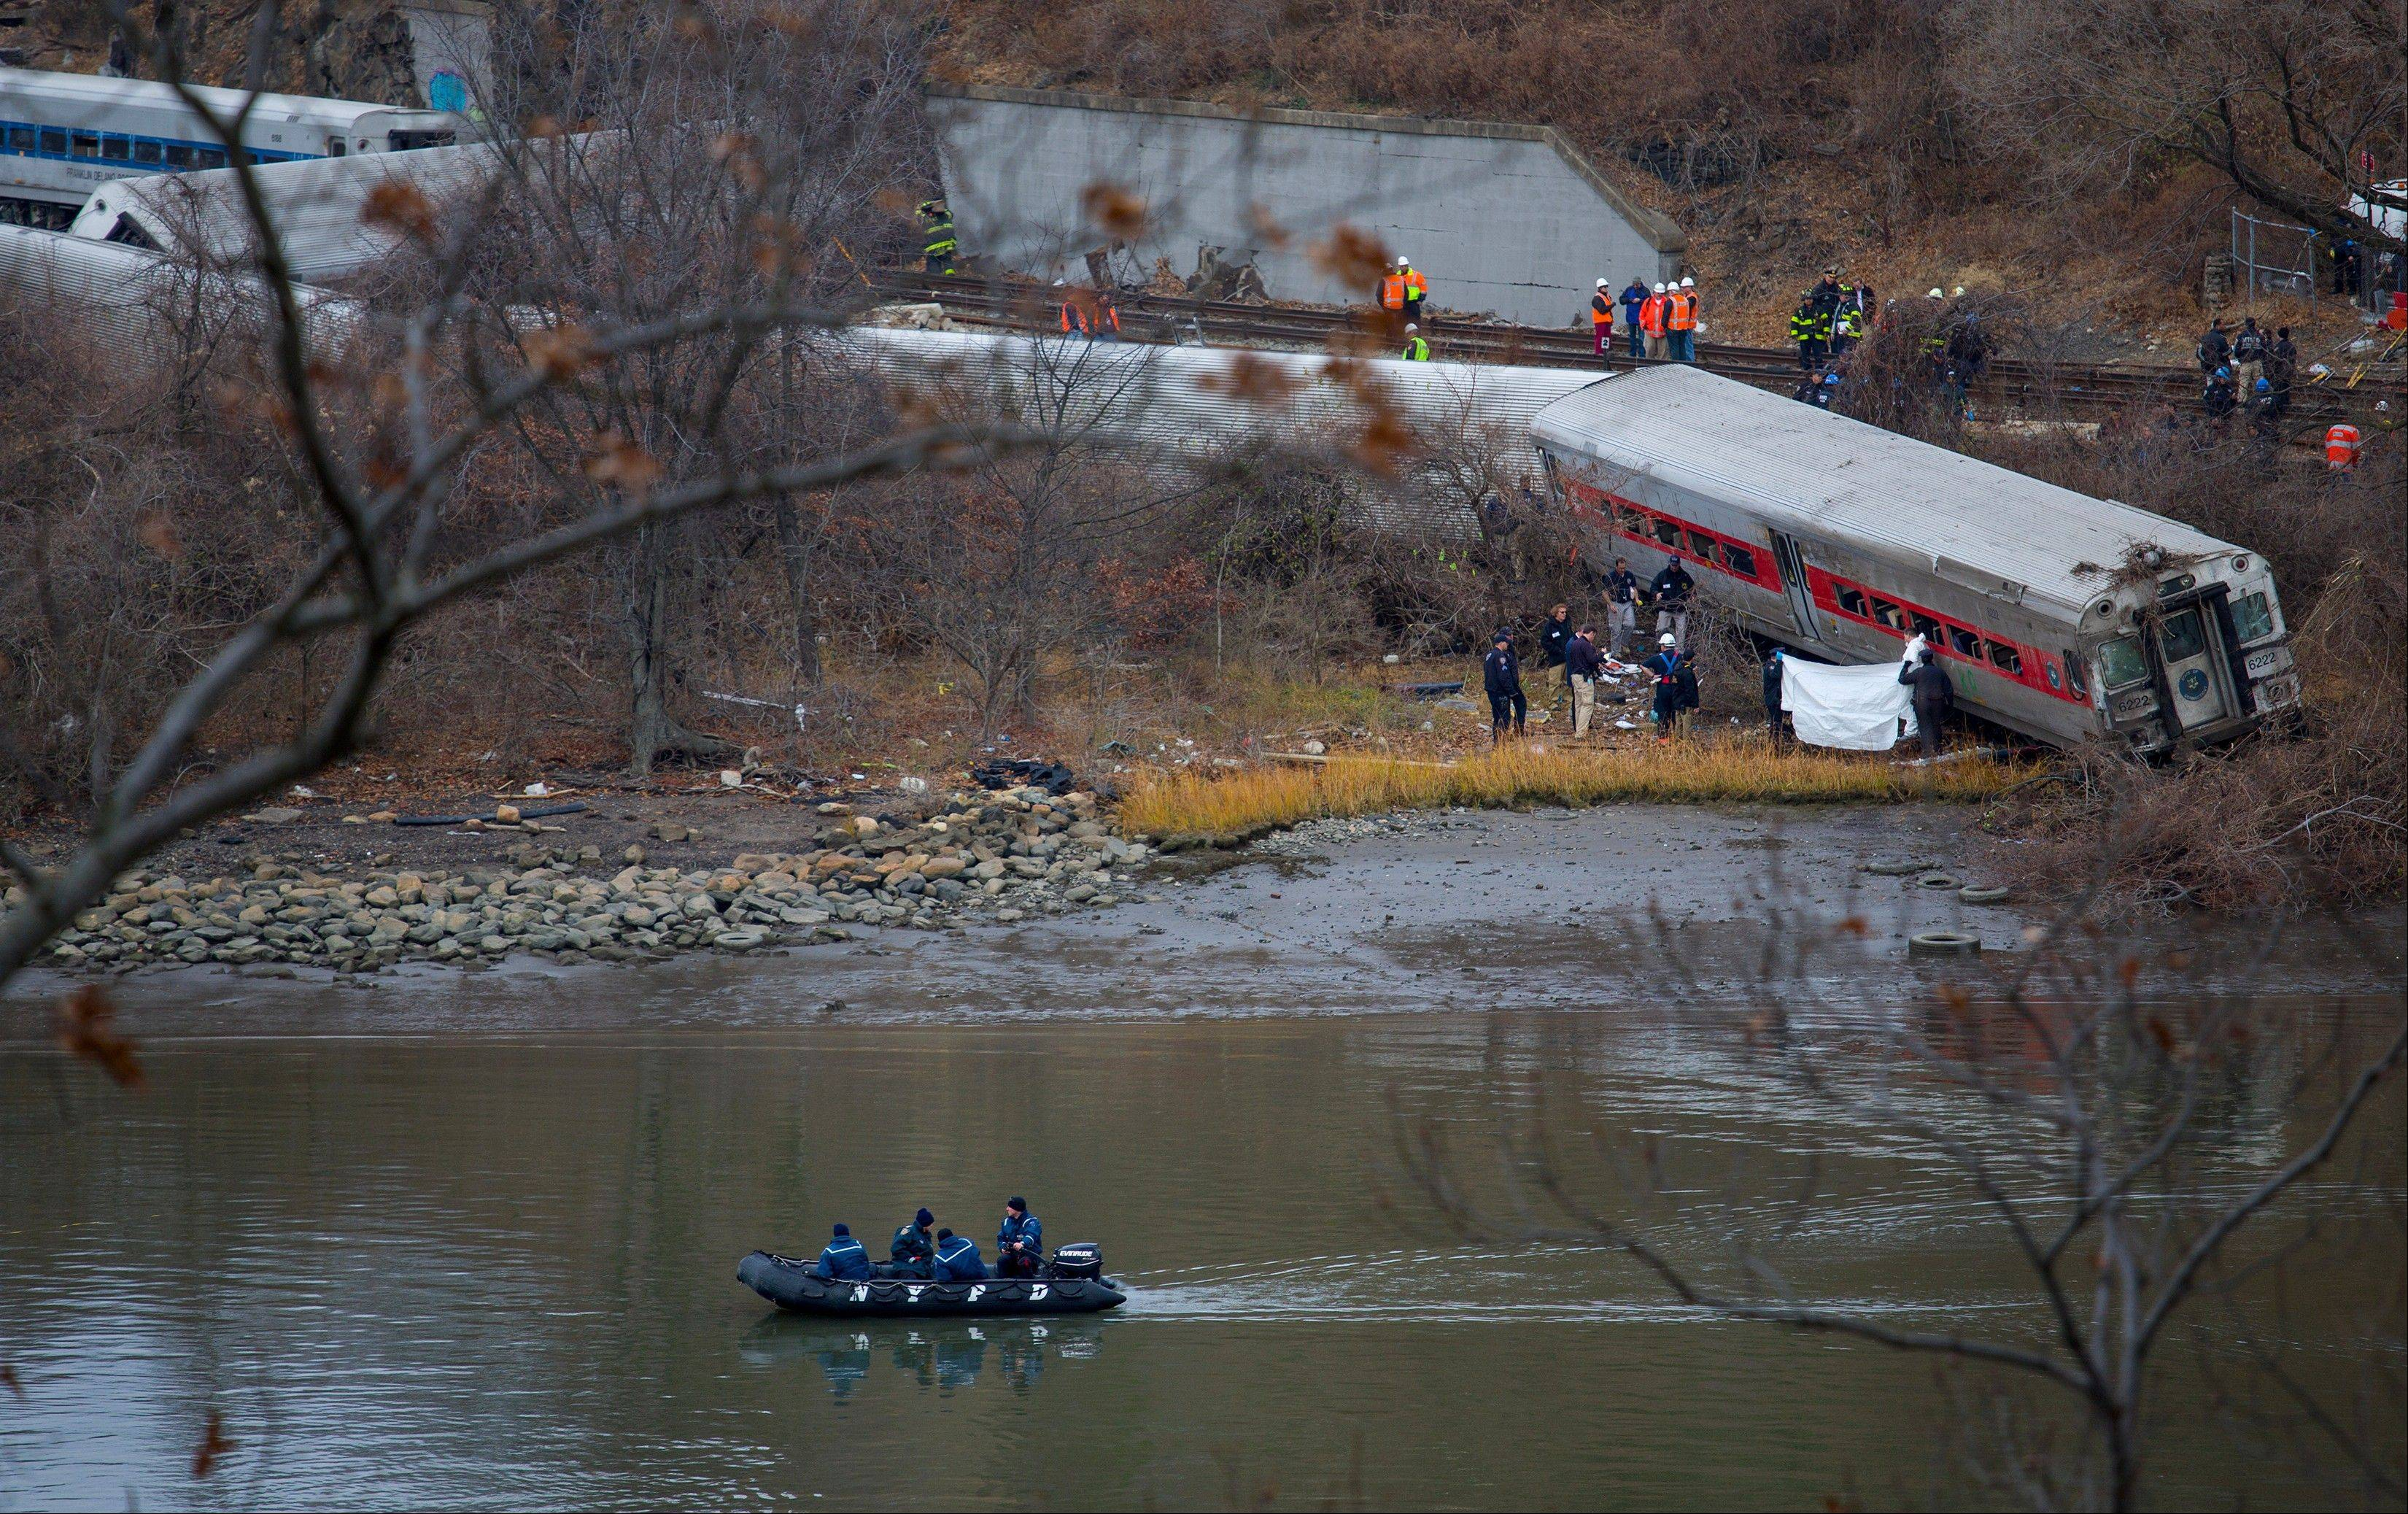 Viewed from Manhattan, first responders and others work near a victim next to a derailed Metro-North passenger train in the Bronx borough of New York.